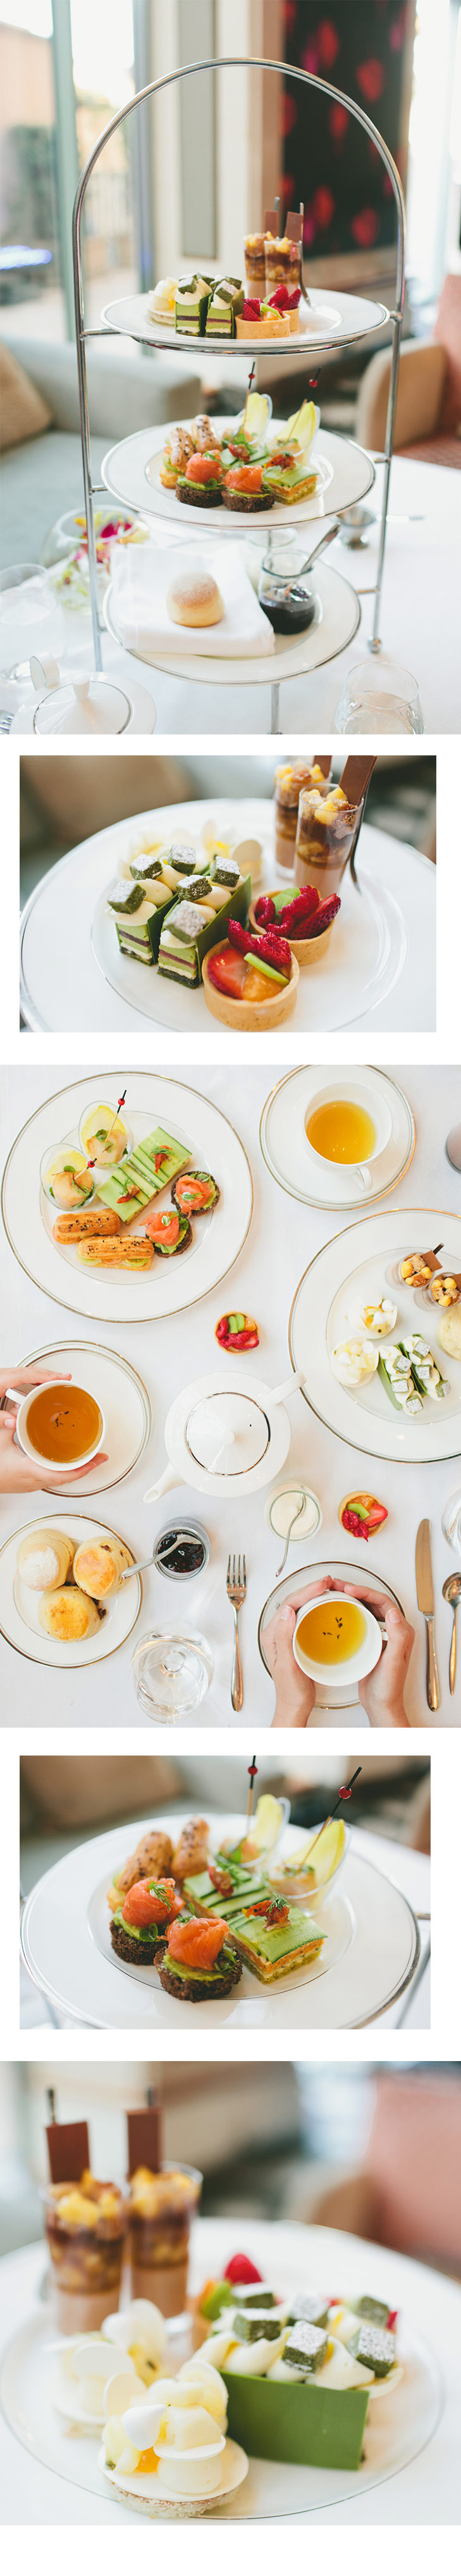 High Tea at Shangri-La Sydney. Photo Credit : May Leong + Priscilla Barbosa